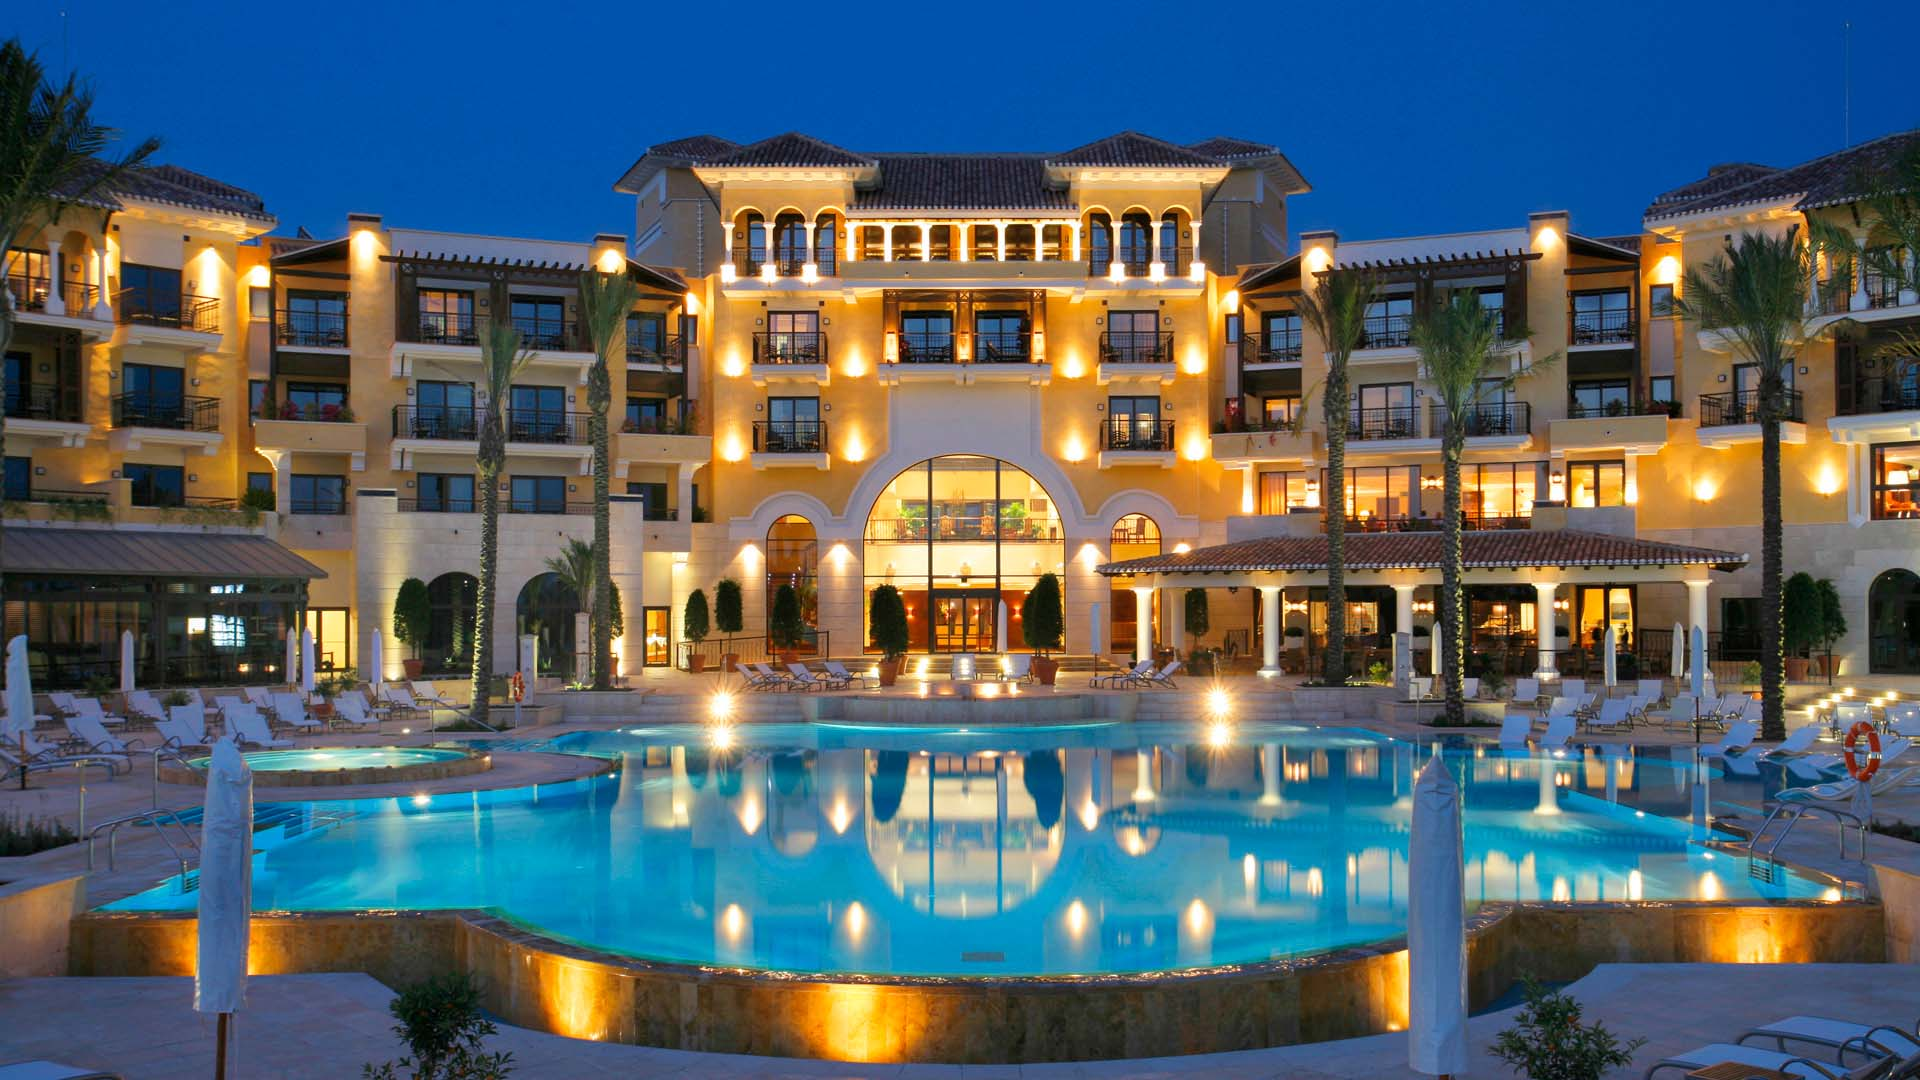 InterContinental Mar Menor, hotel, night